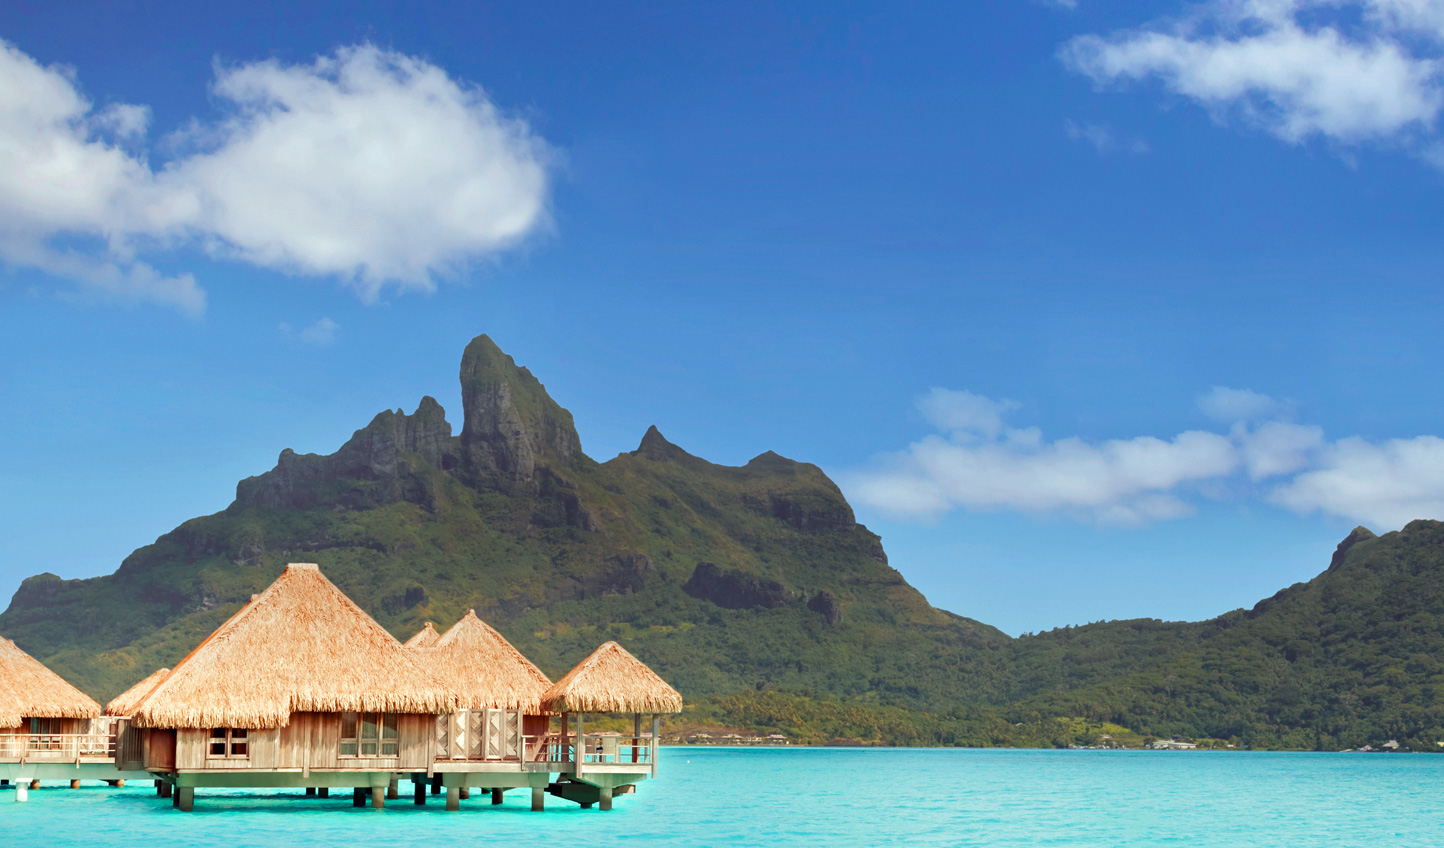 Crystal clear waters and bright blue skies characterise your stay in Bora Bora